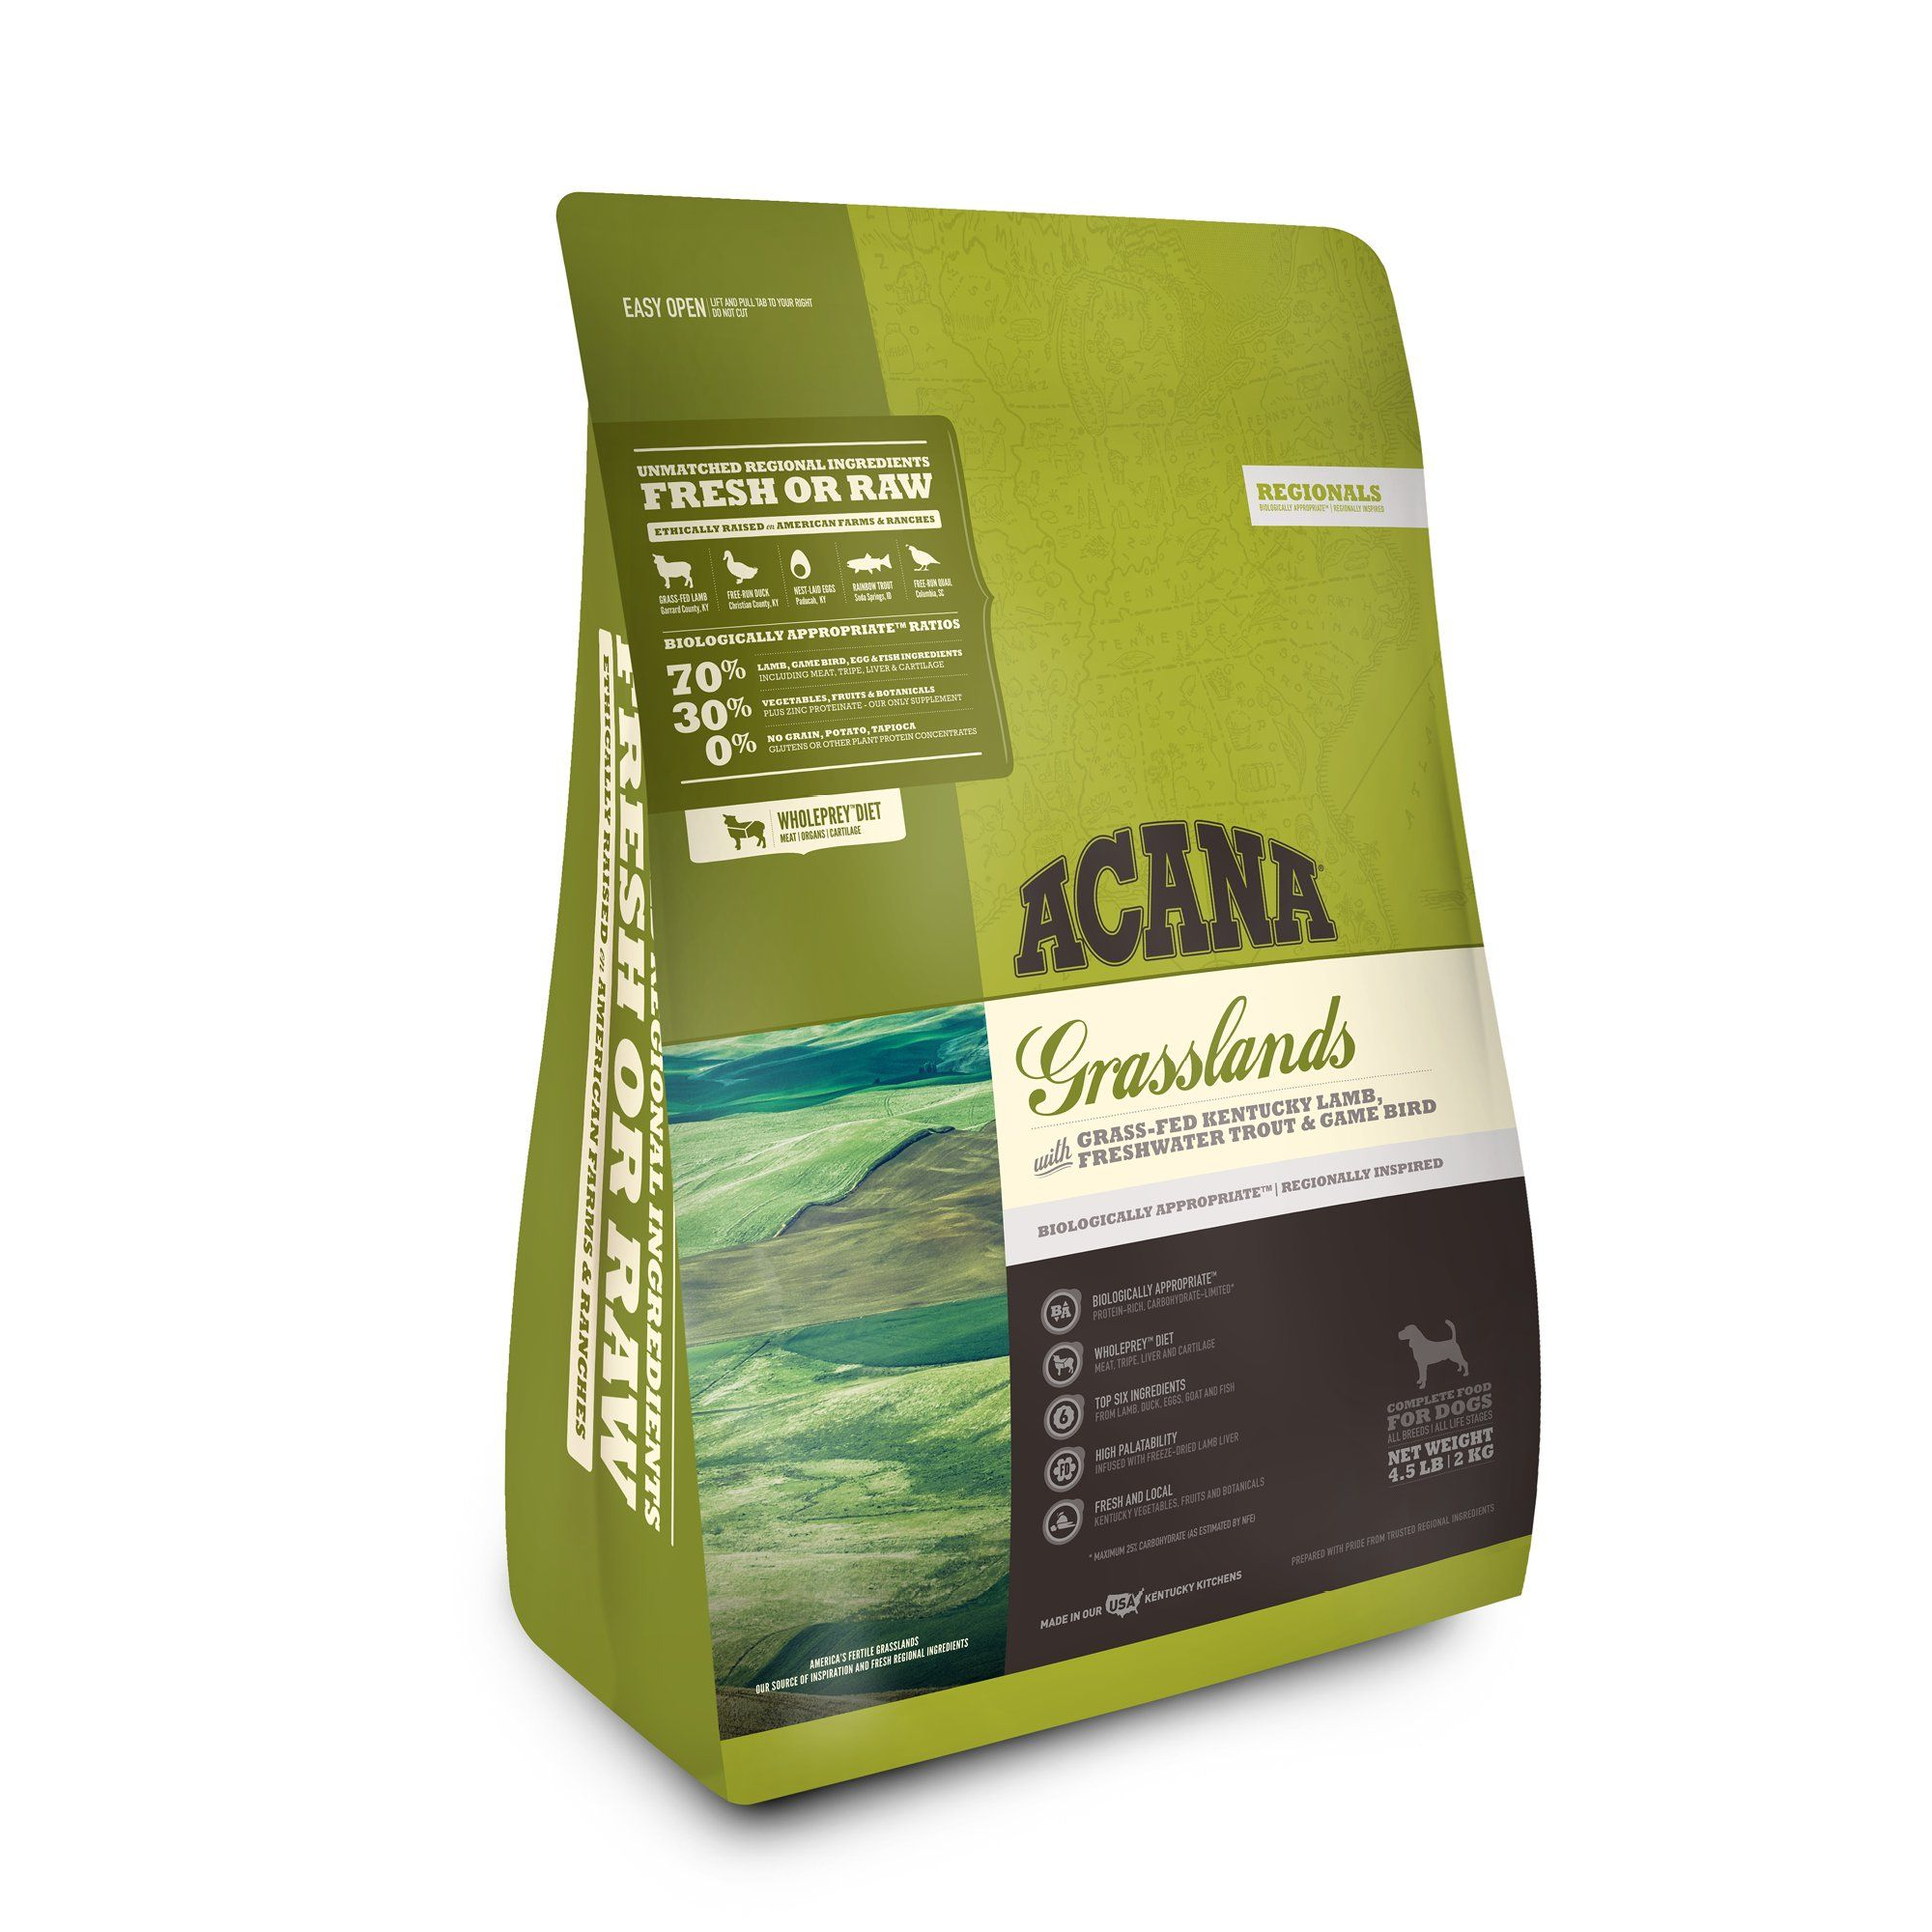 Acana Grasslands Dry Dog Food 4 5 Lbs Dry Dog Food Dry Cat